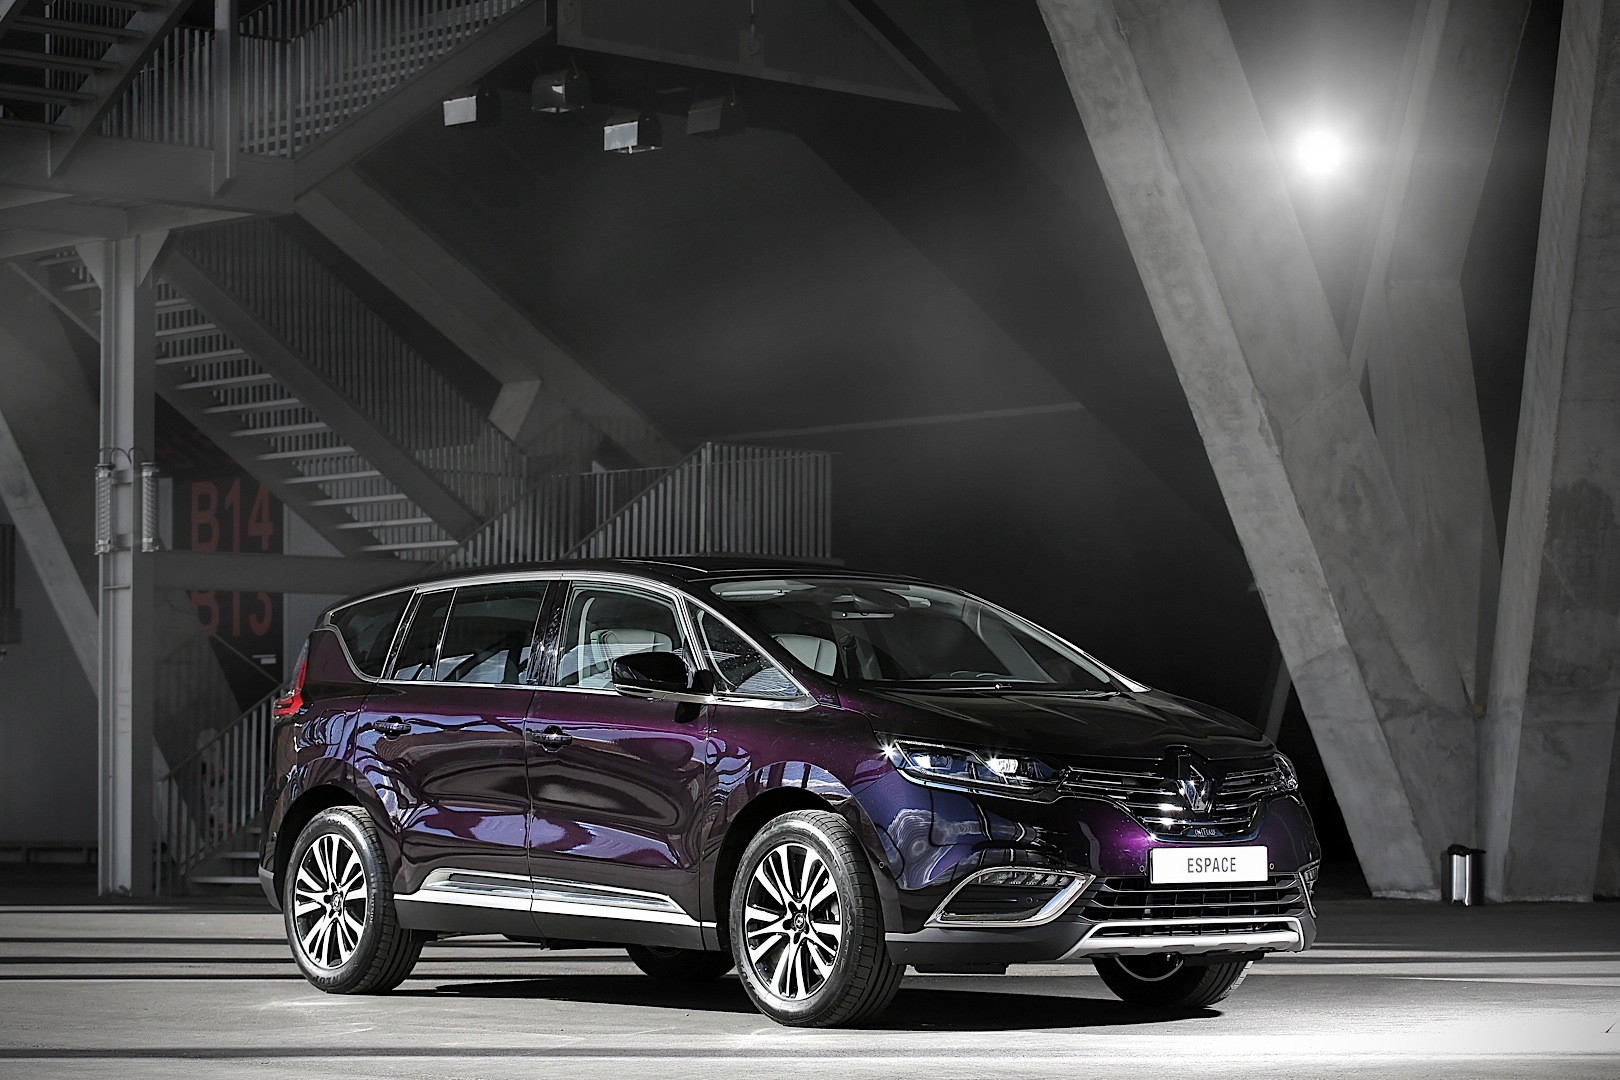 Best Ev Cars >> 2015 Renault Espace Looks Stunning in Dark Amethyst - autoevolution